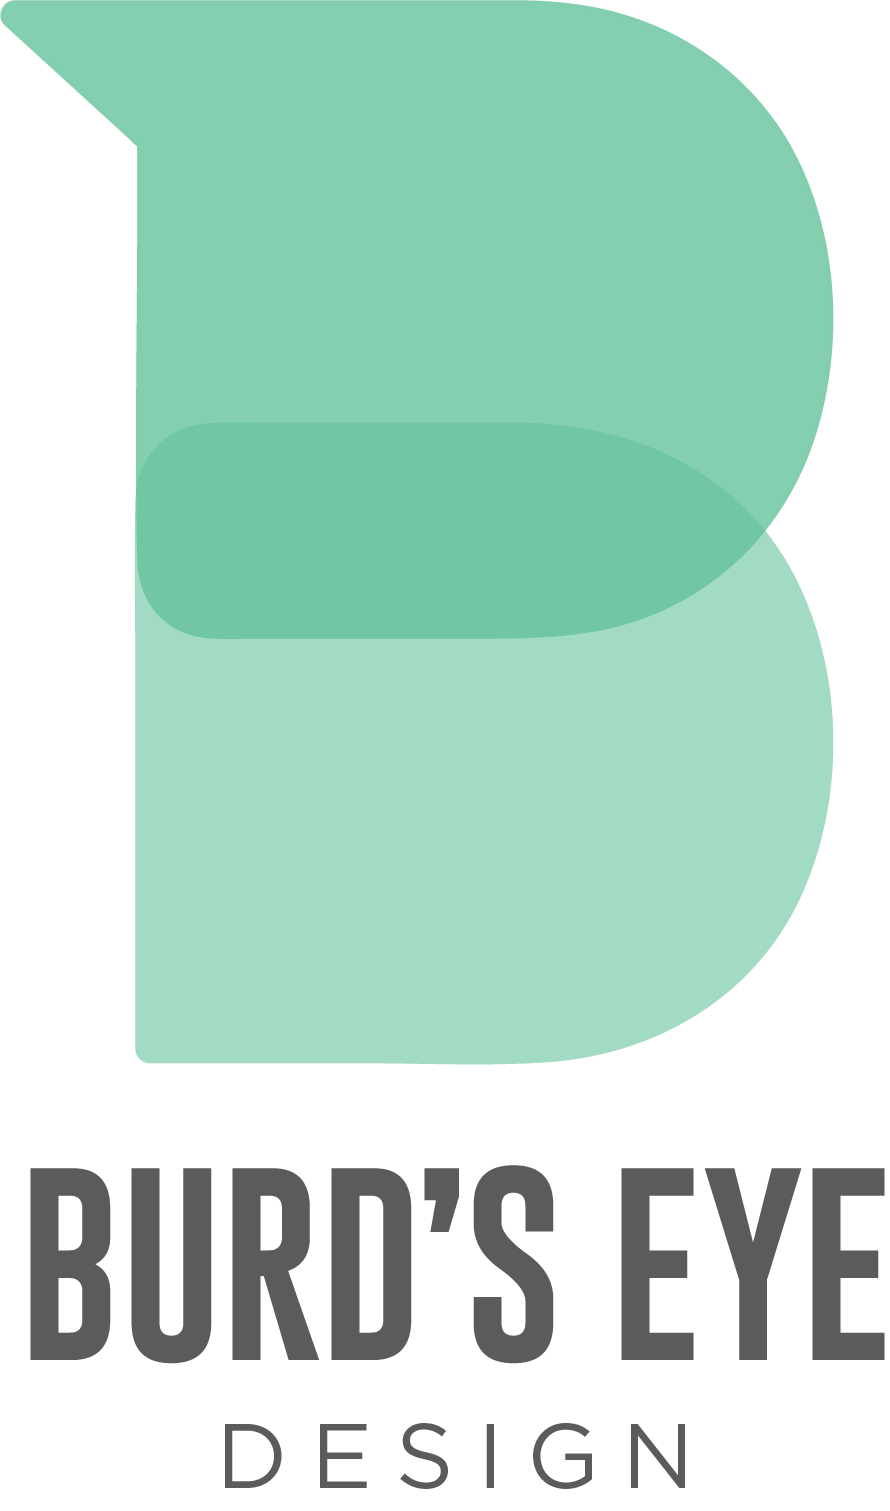 Burd's Eye Design Logo